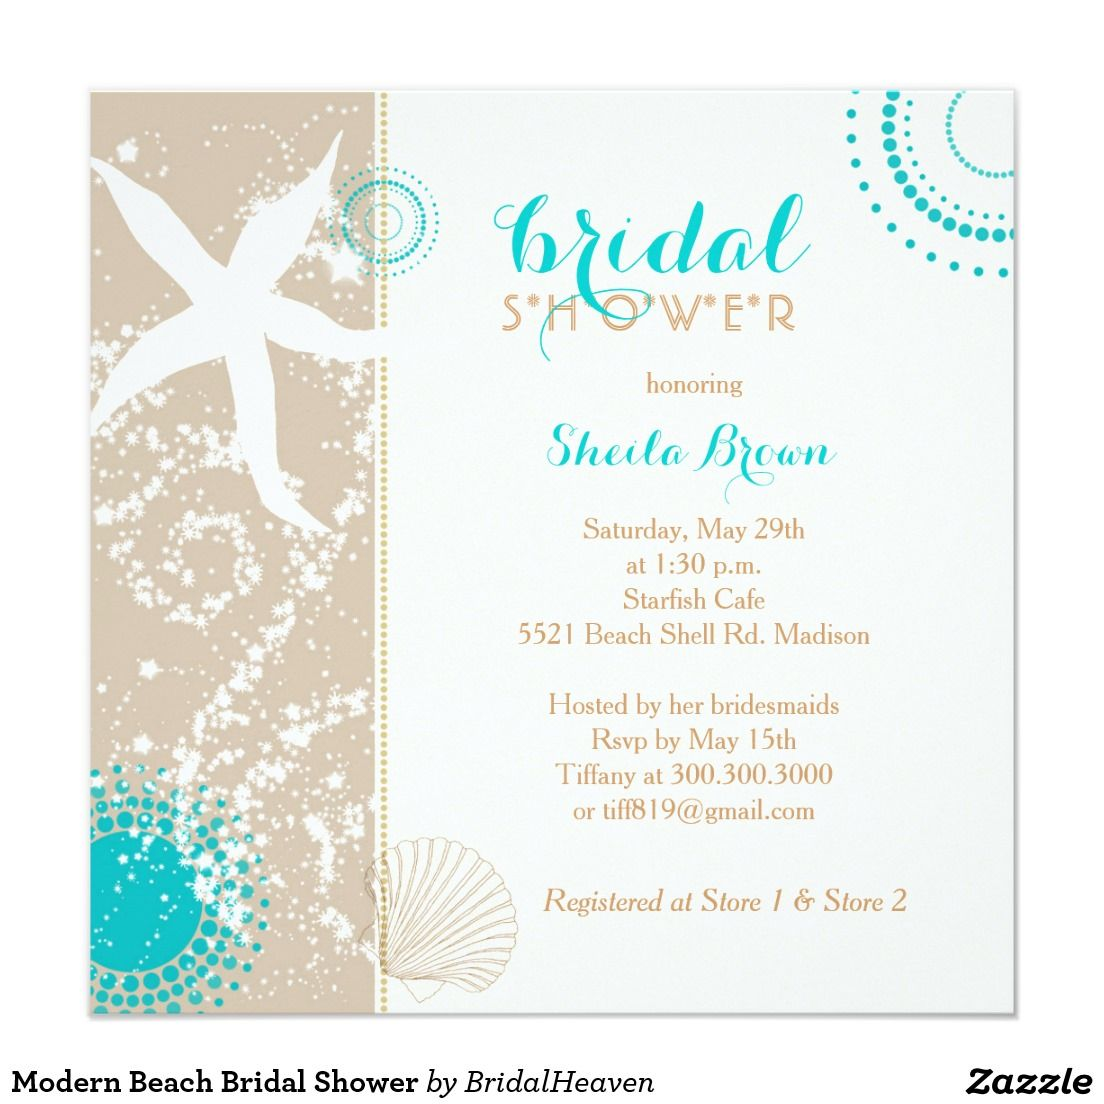 Modern Beach Bridal Shower Card | Beach bridal showers, Bridal ...